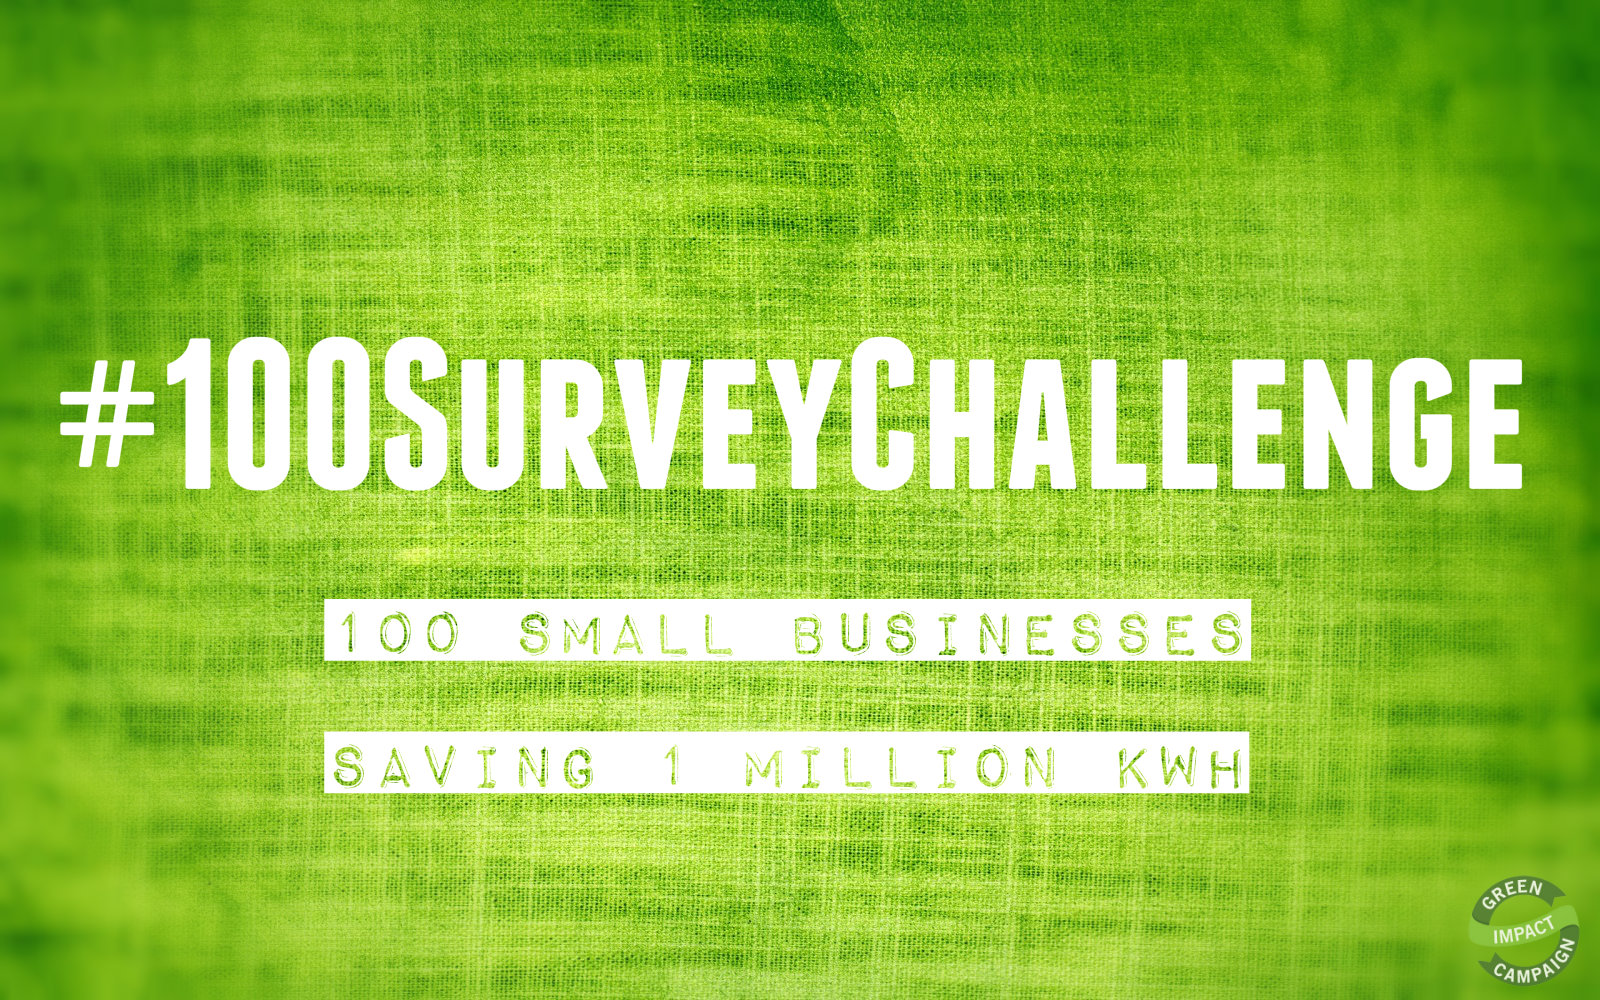 Introducing the #100SurveyChallenge